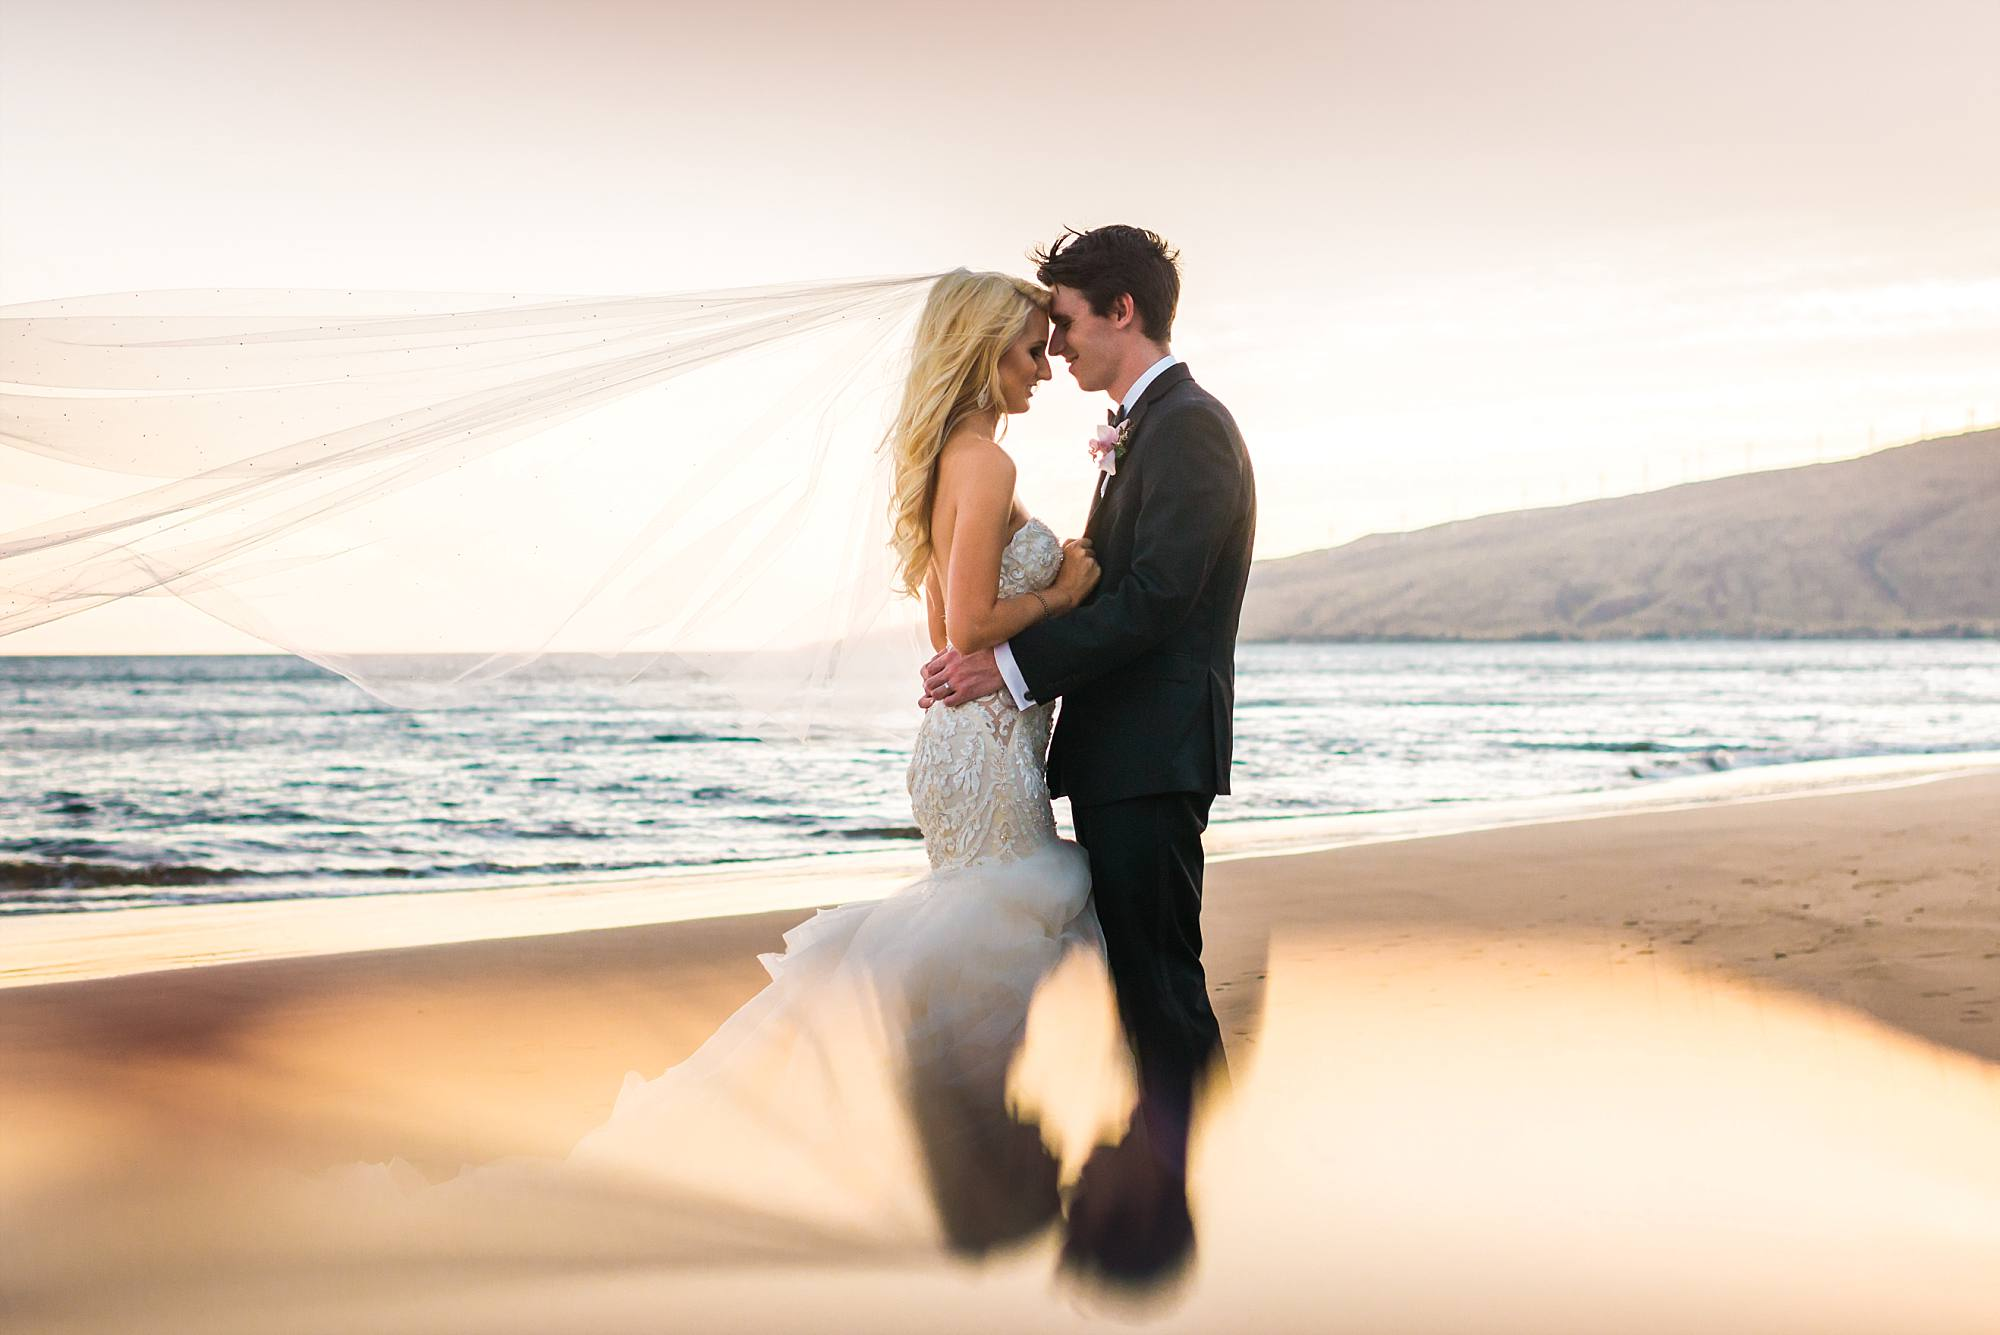 bridal couple shot with incredible reflection and veil sweeping out over the sand